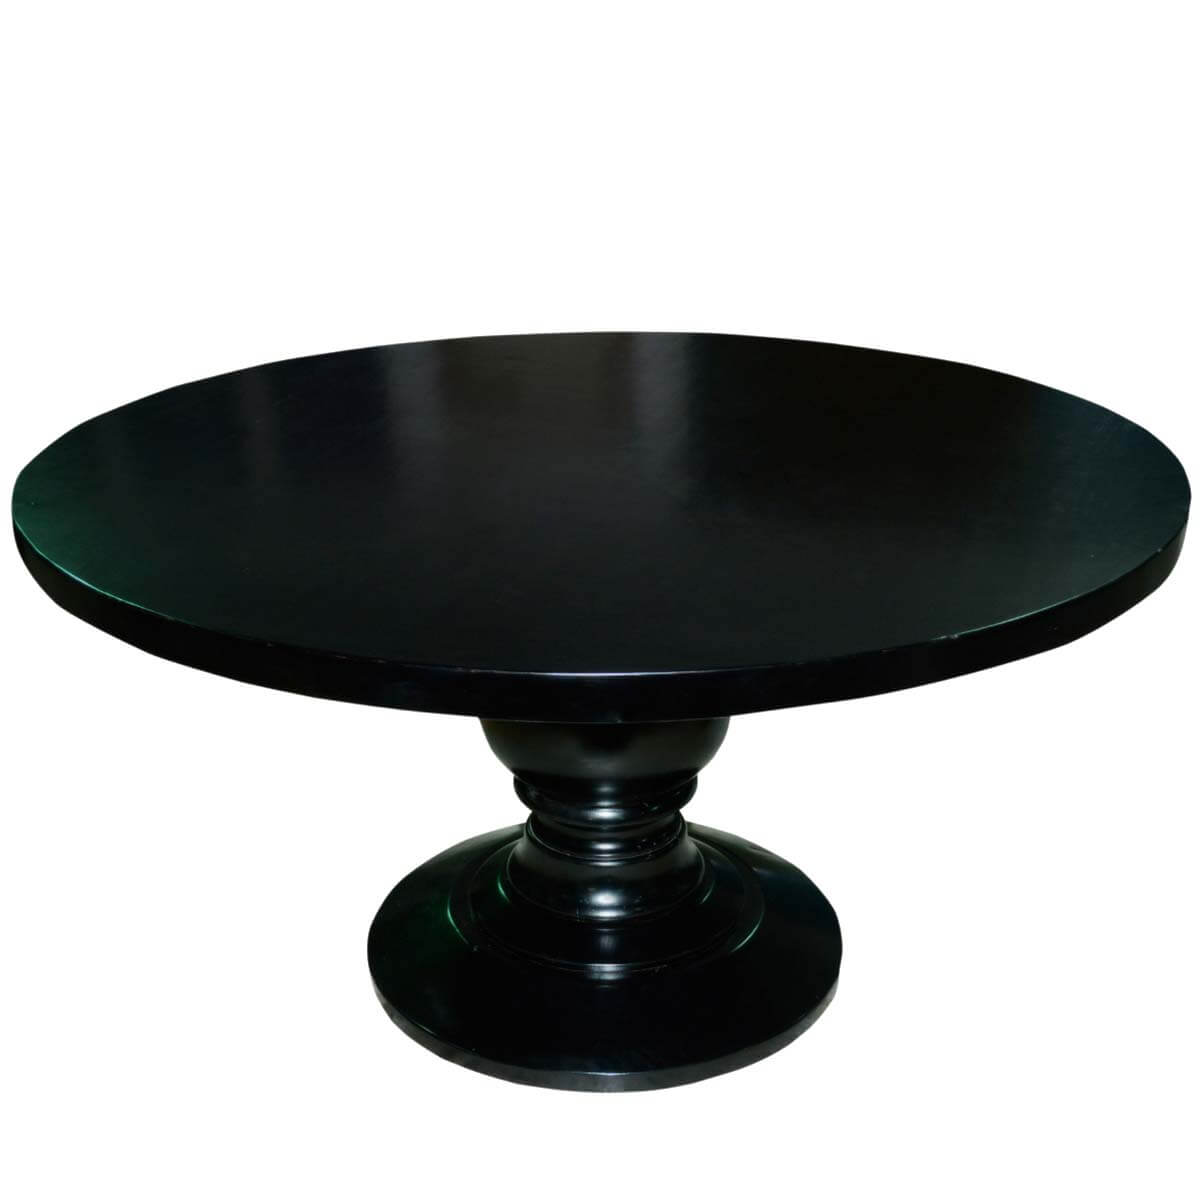 Sutton black baluster pedestal traditional wood round for Black round dining table